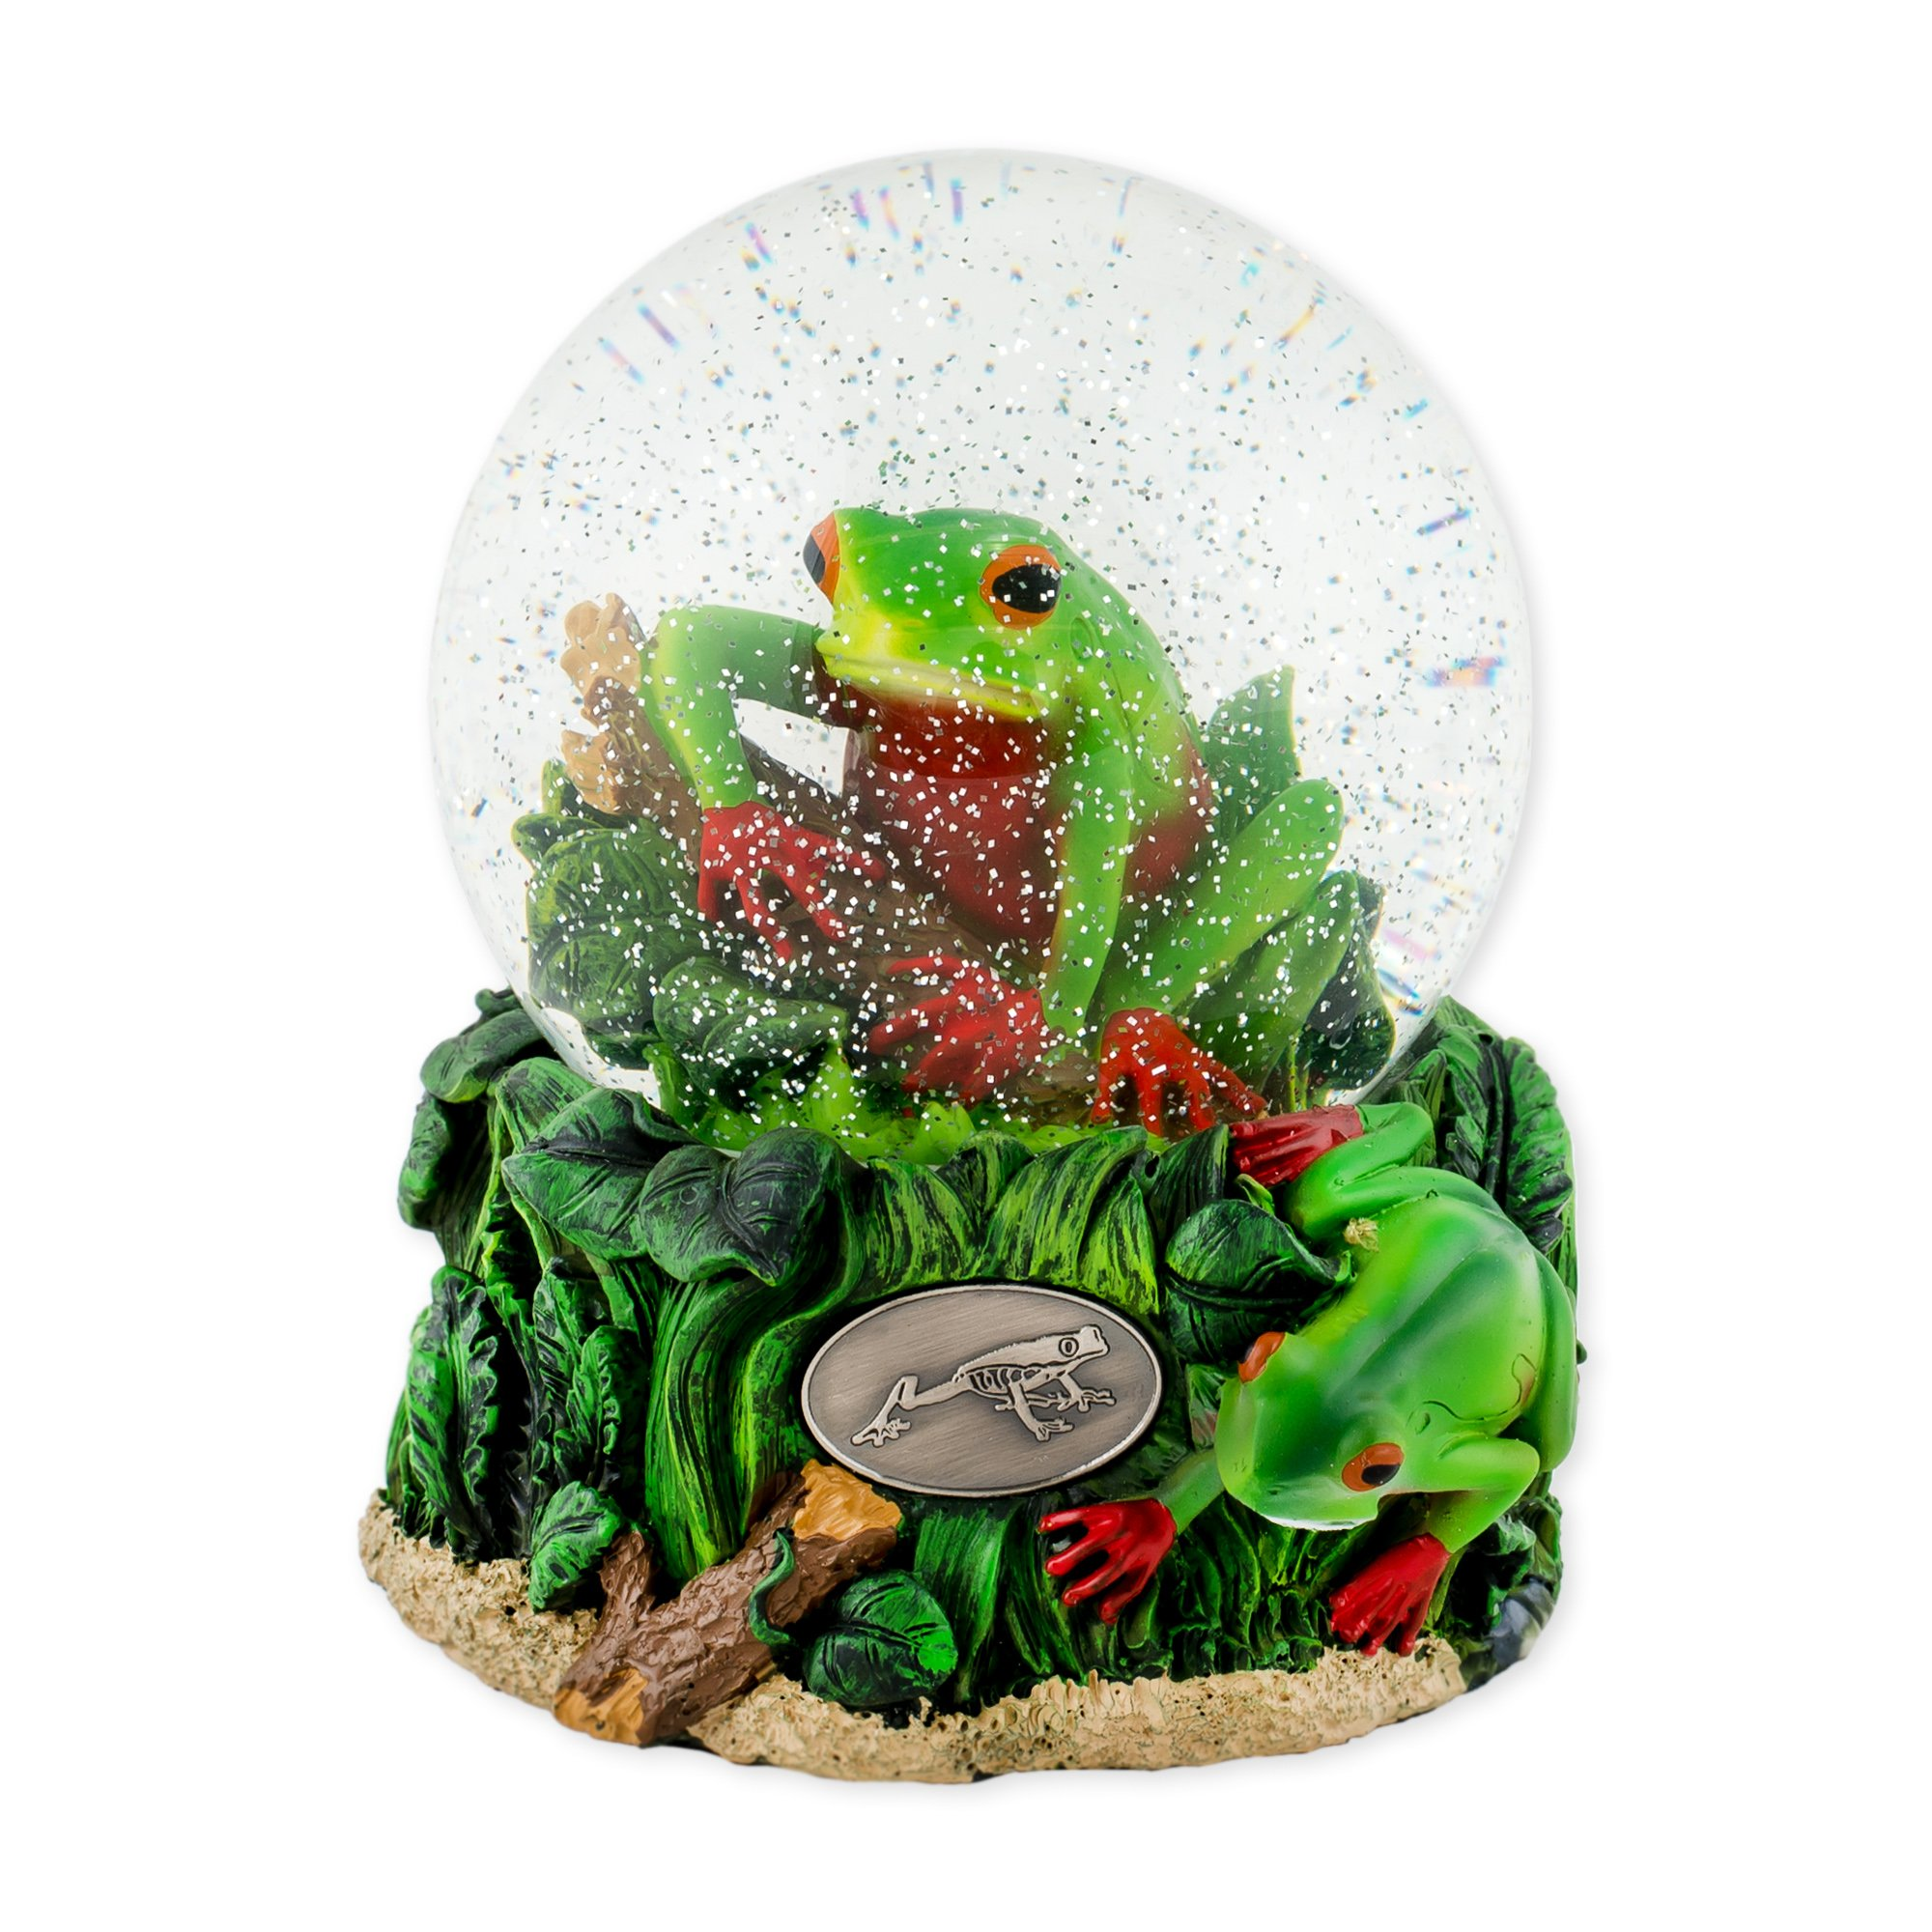 Playful Tree Frog 100mm Resin Glitter Water Globe Plays Tune Somebody Loves Me